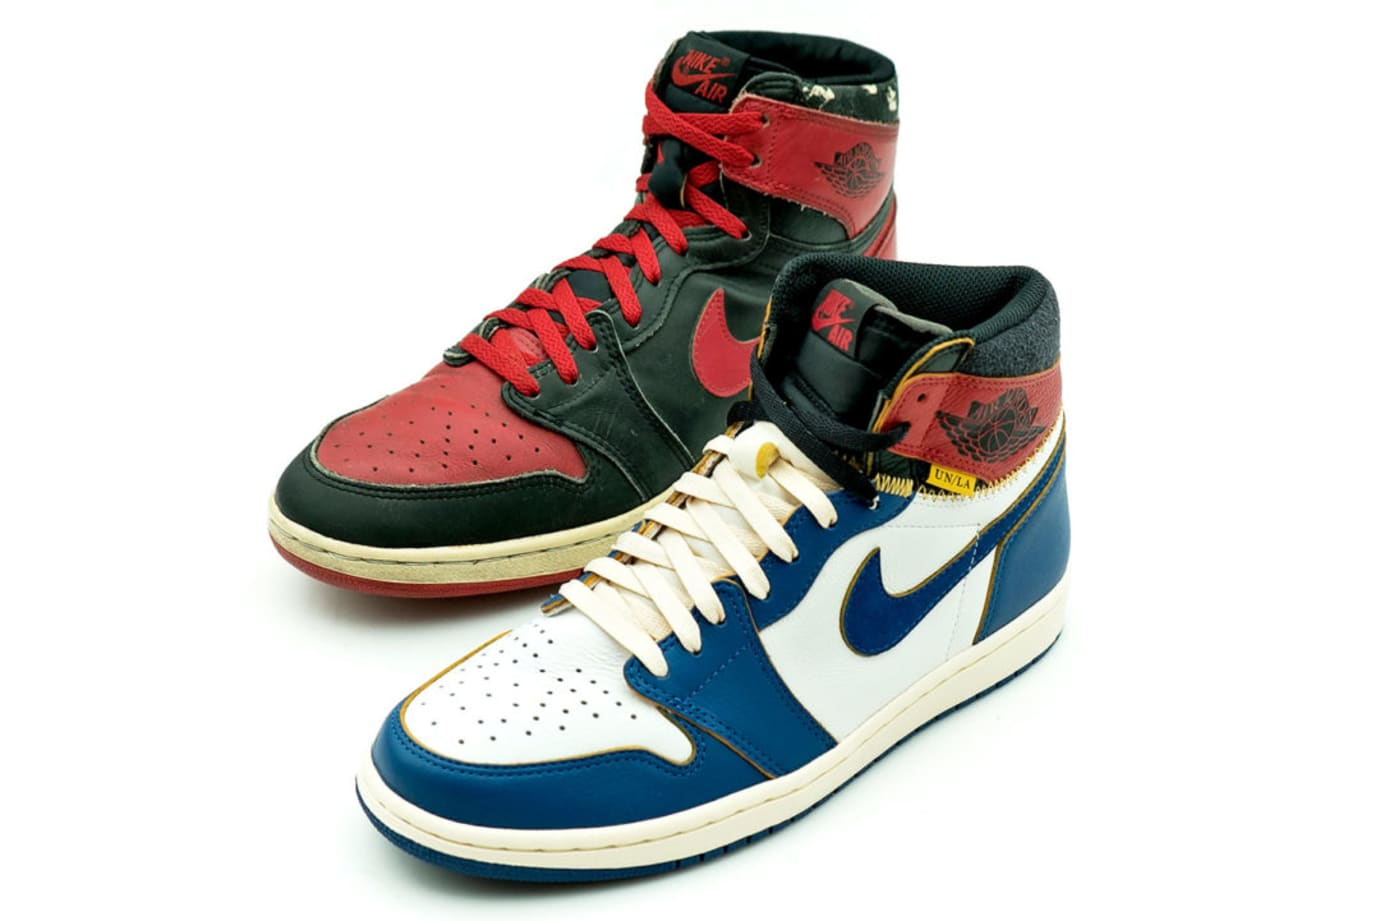 Union x Air Jordan 1 Comparison (vs. 'Black/Red')